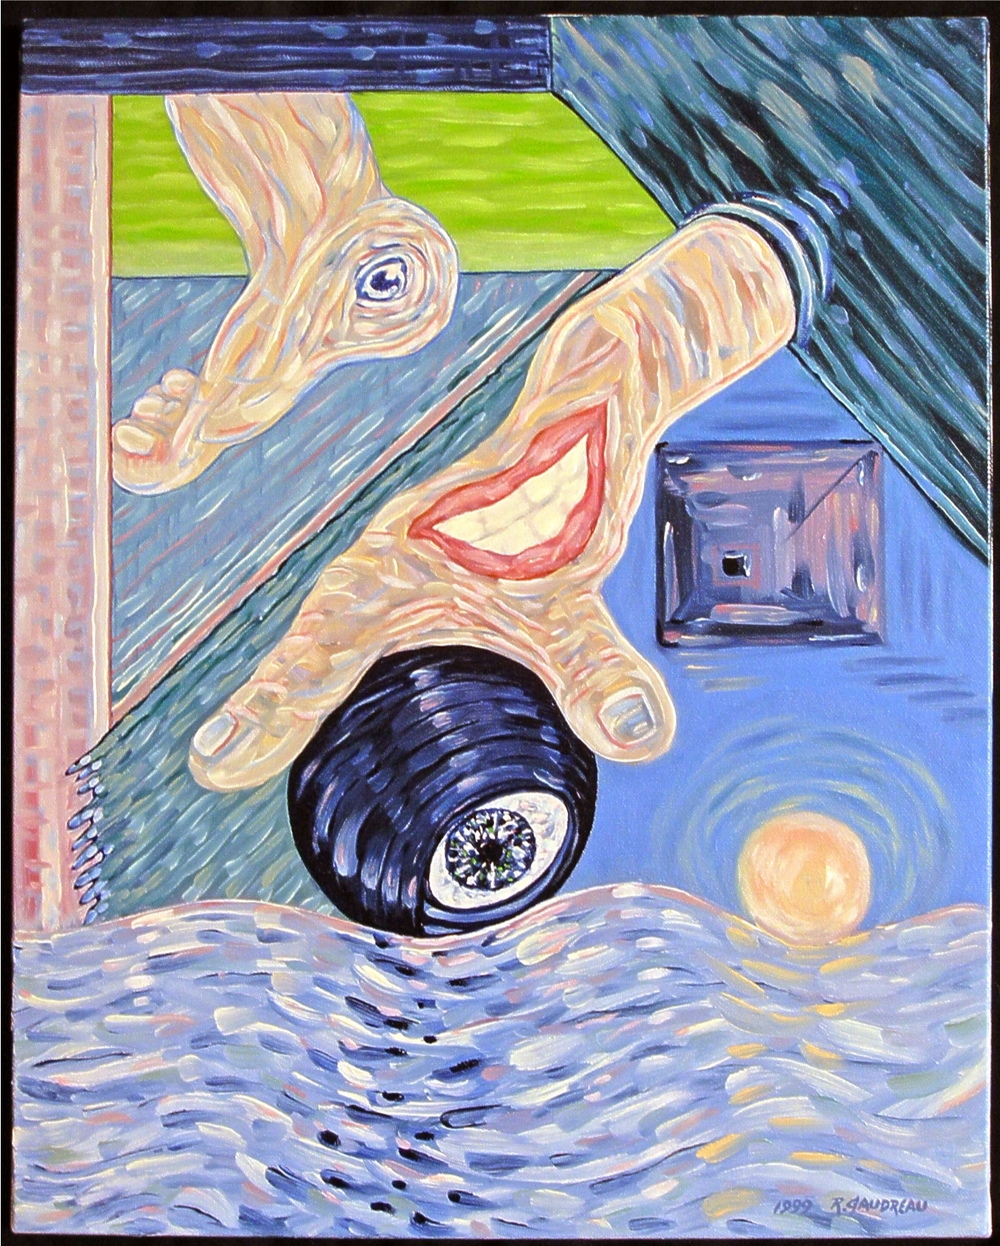 Split Personality    1999 oil on canvas 20 x 16 inches